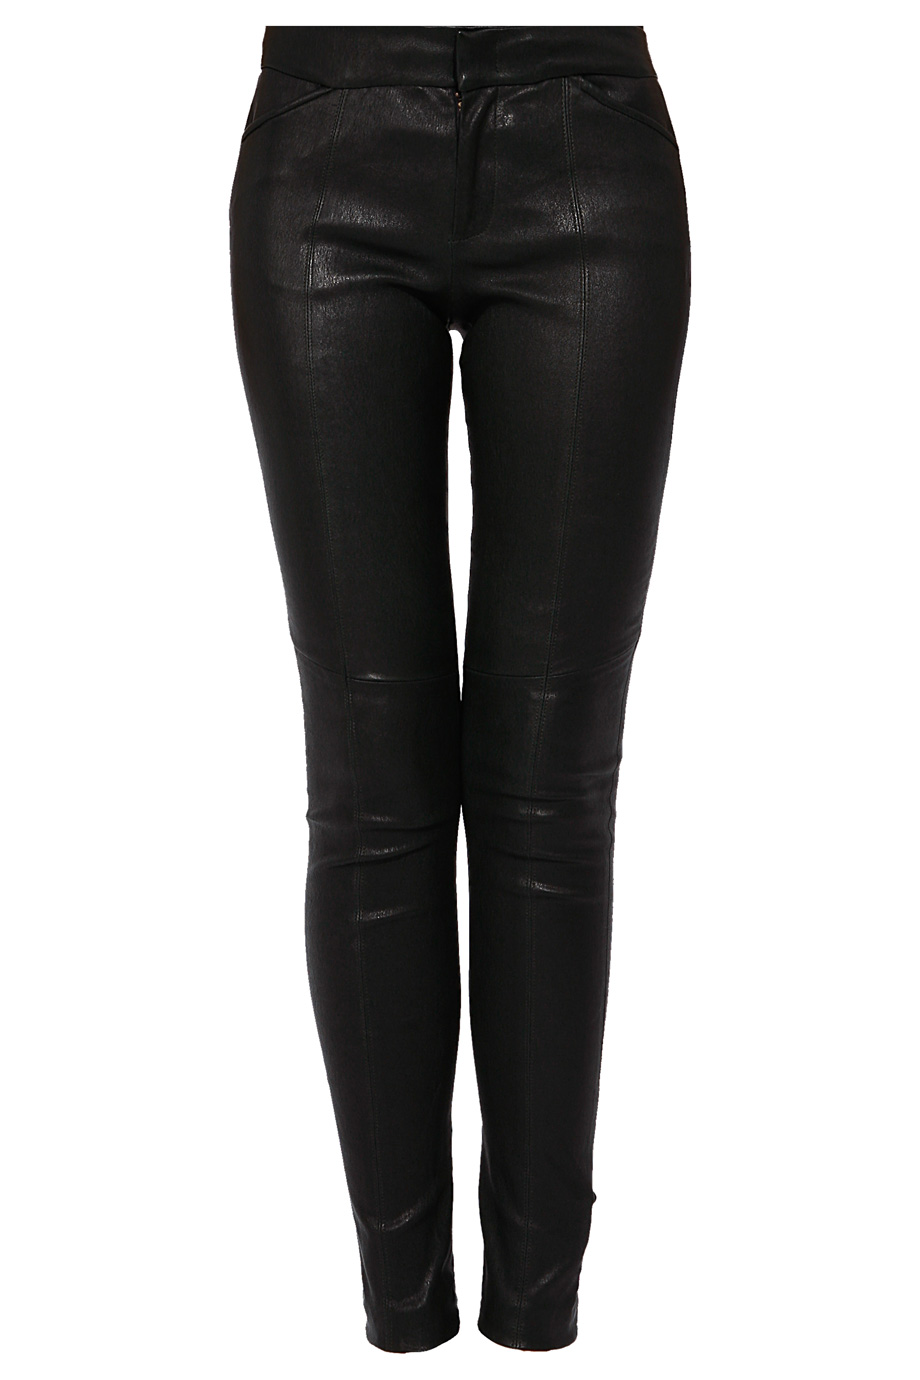 Find great deals on eBay for stretch leather pants. Shop with confidence.